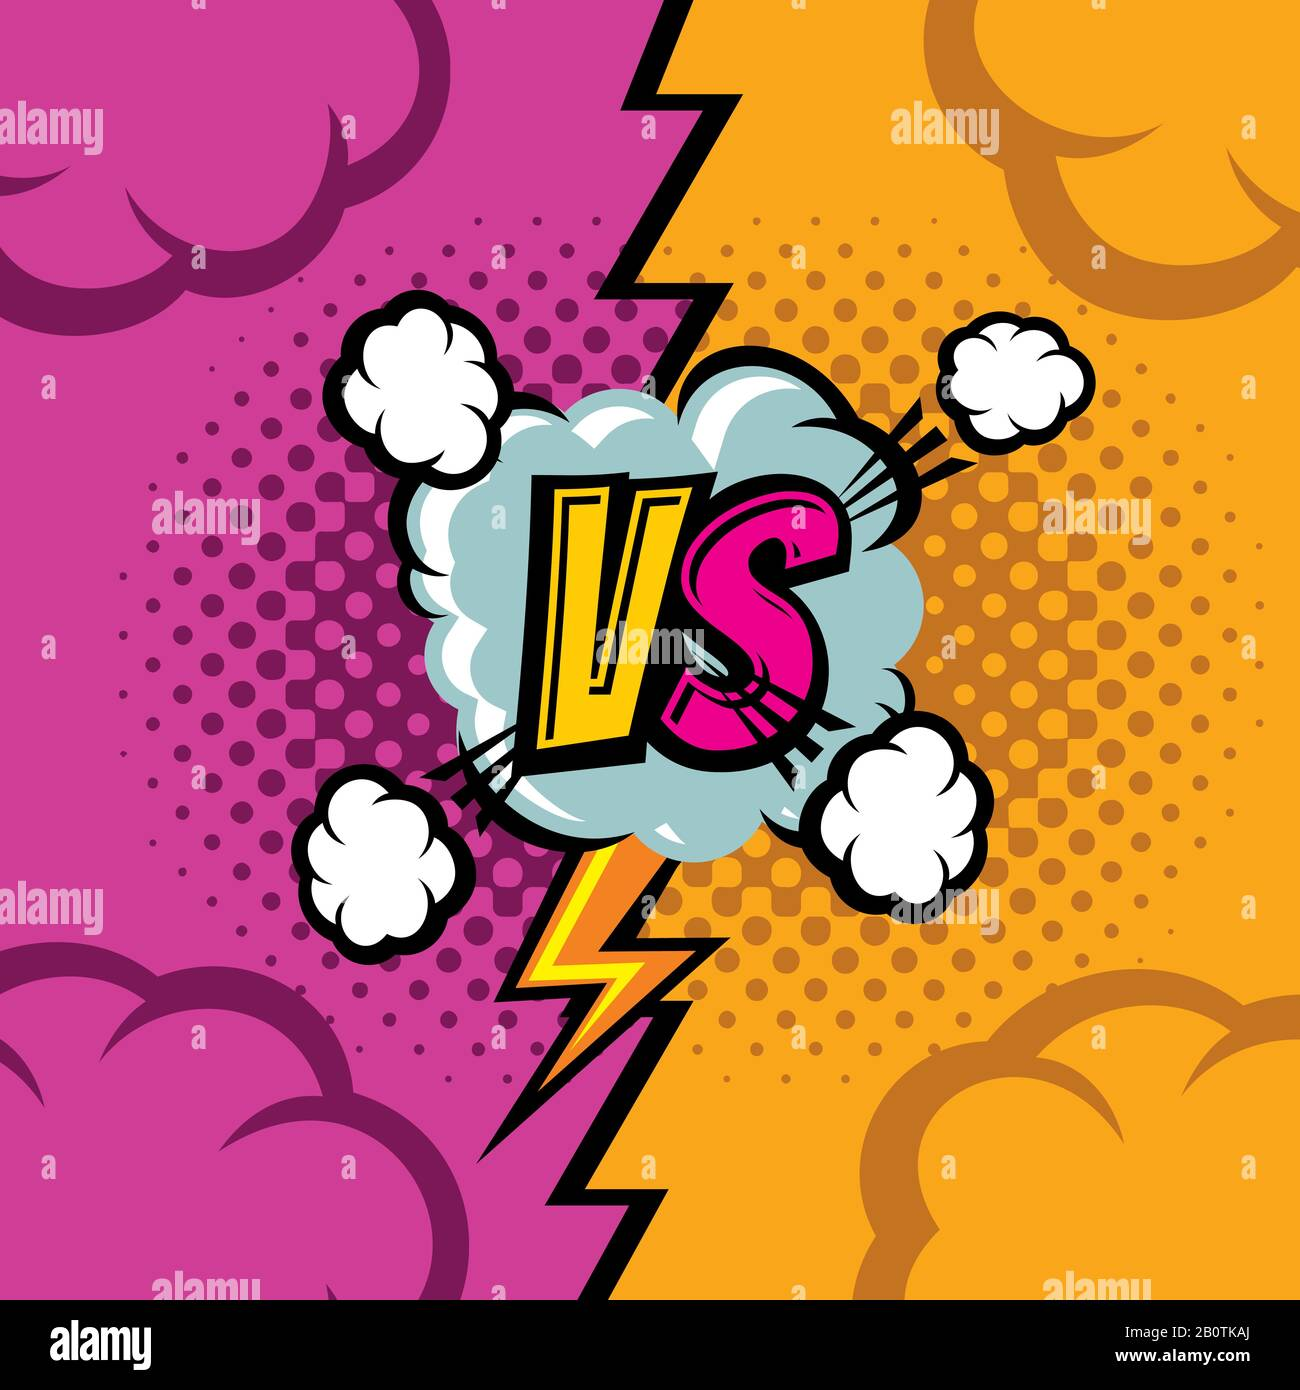 Versus Vector Cartoon Comic Book Background Fighting Duel Championship Retro Art Competition And Confrontation Compare And Battle Illustration Stock Vector Image Art Alamy